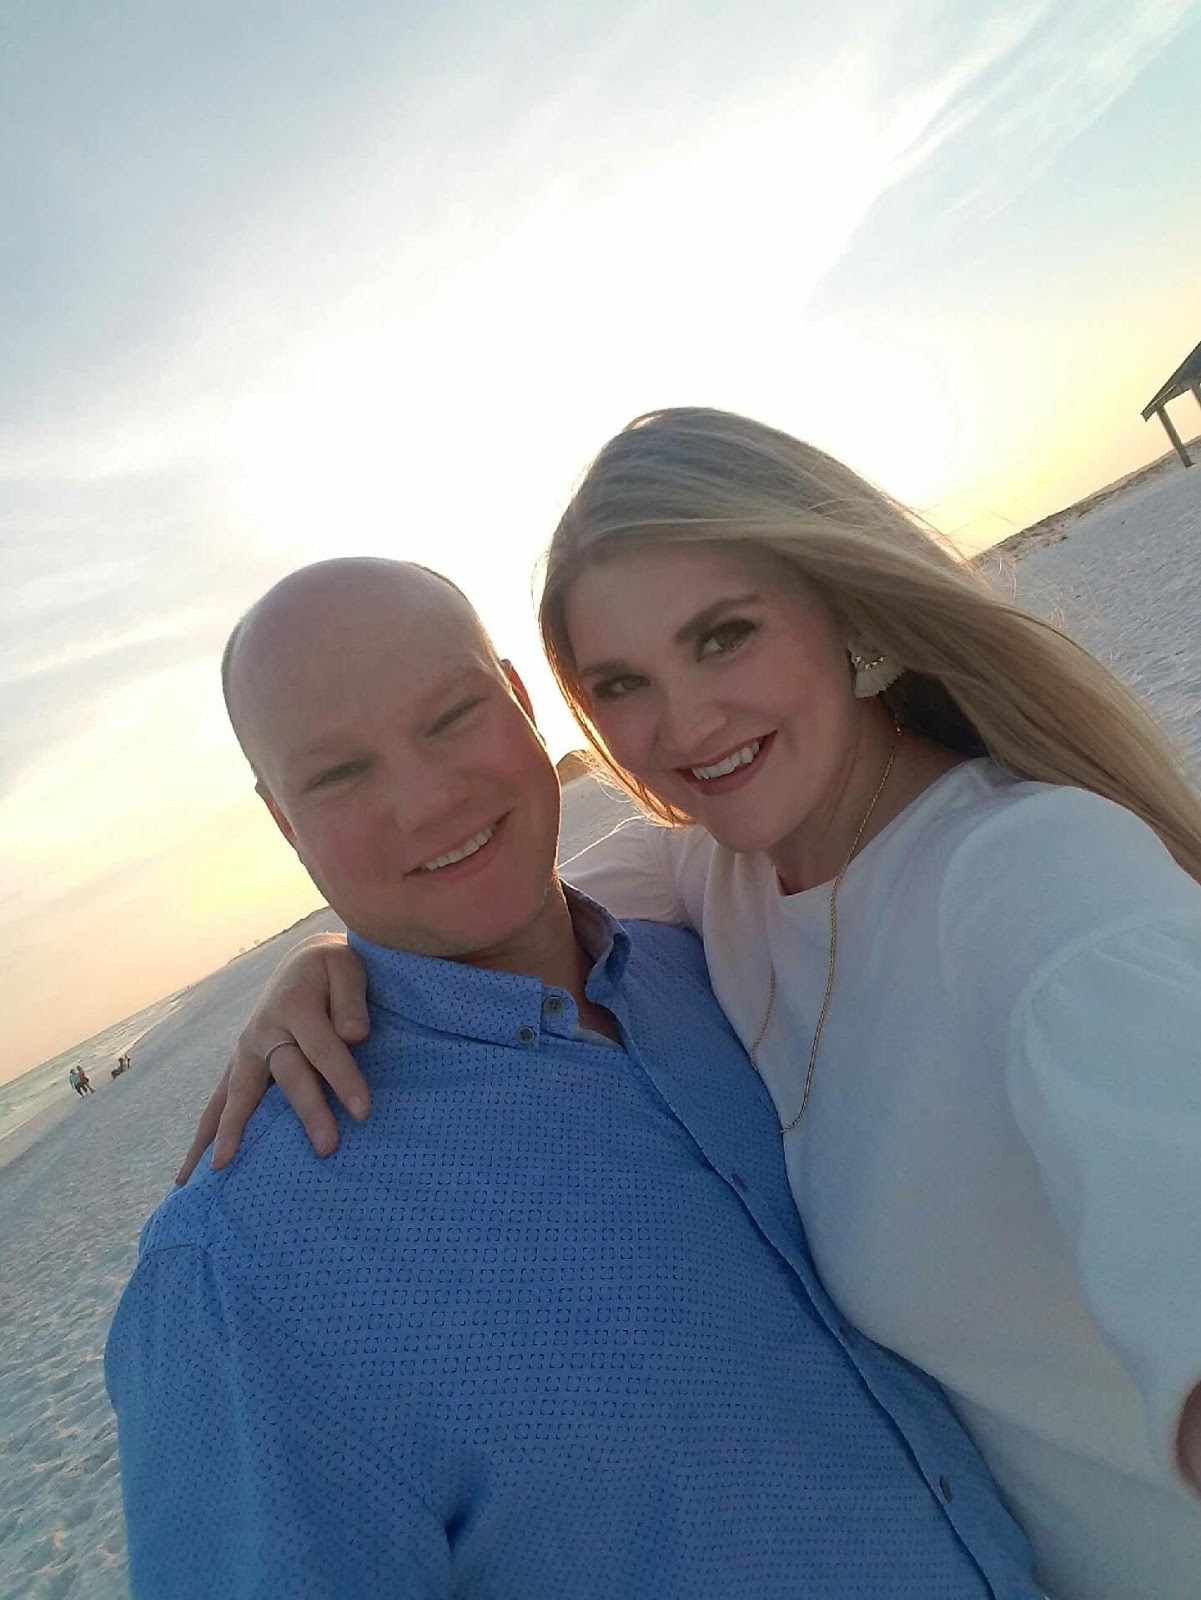 Jessi and her husband enjoying the sunset at one of their favorite beaches, Opal Beach in Pensacola, Florida.